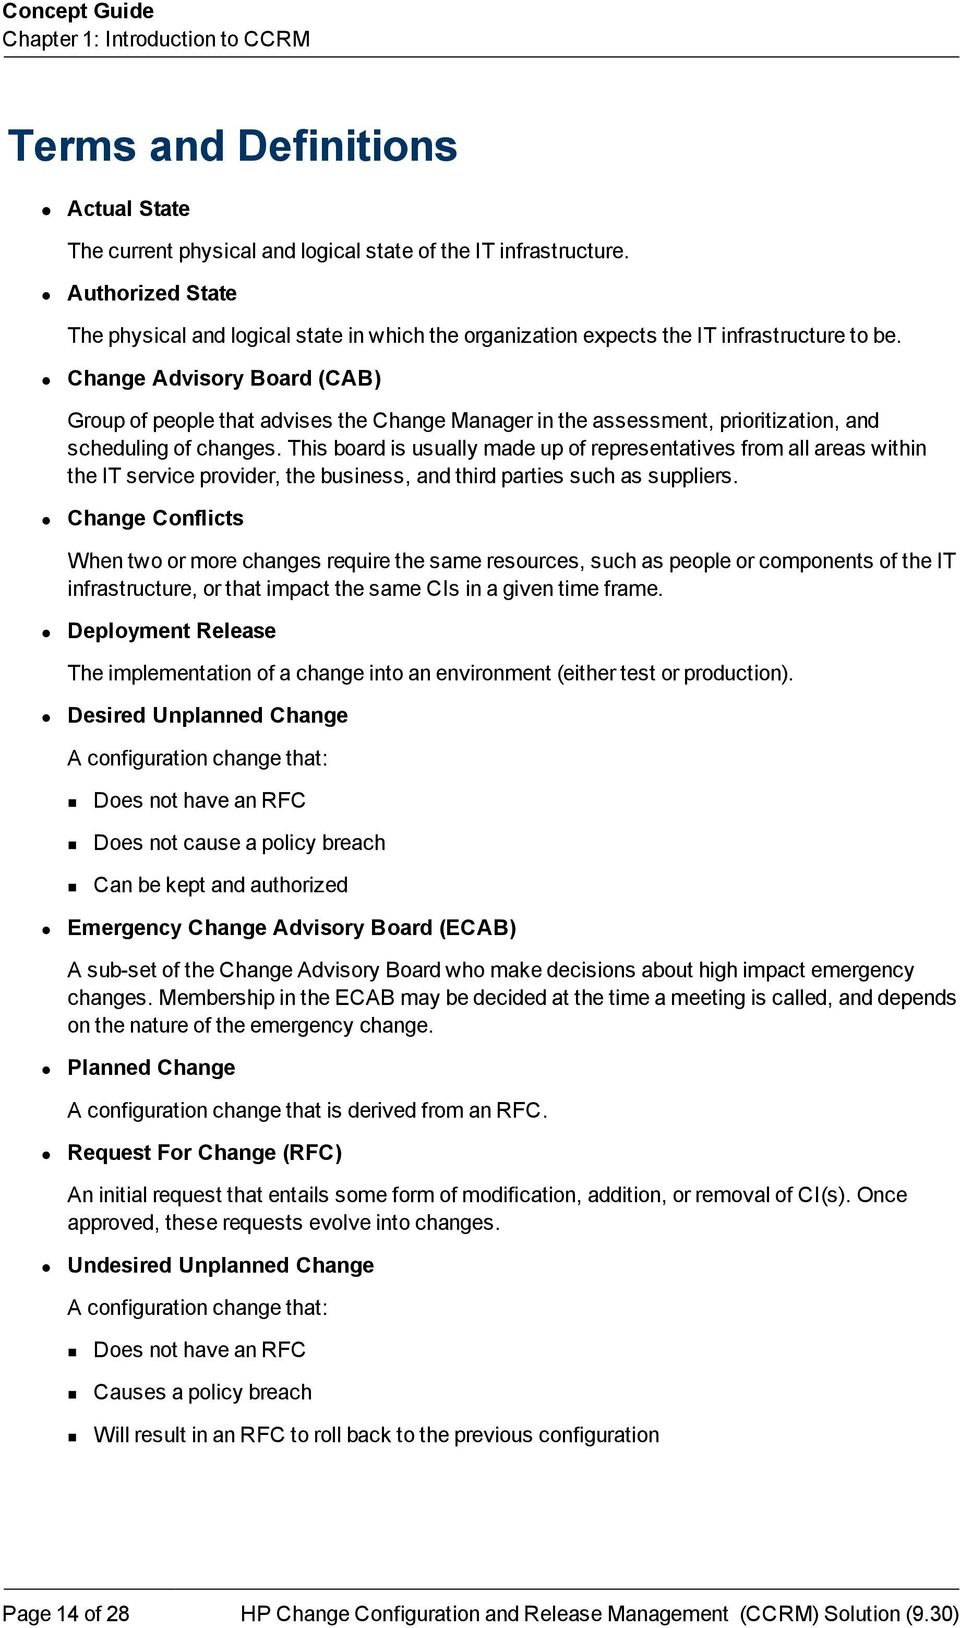 Change Advisory Board (CAB) Group of people that advises the Change Manager in the assessment, prioritization, and scheduling of changes.